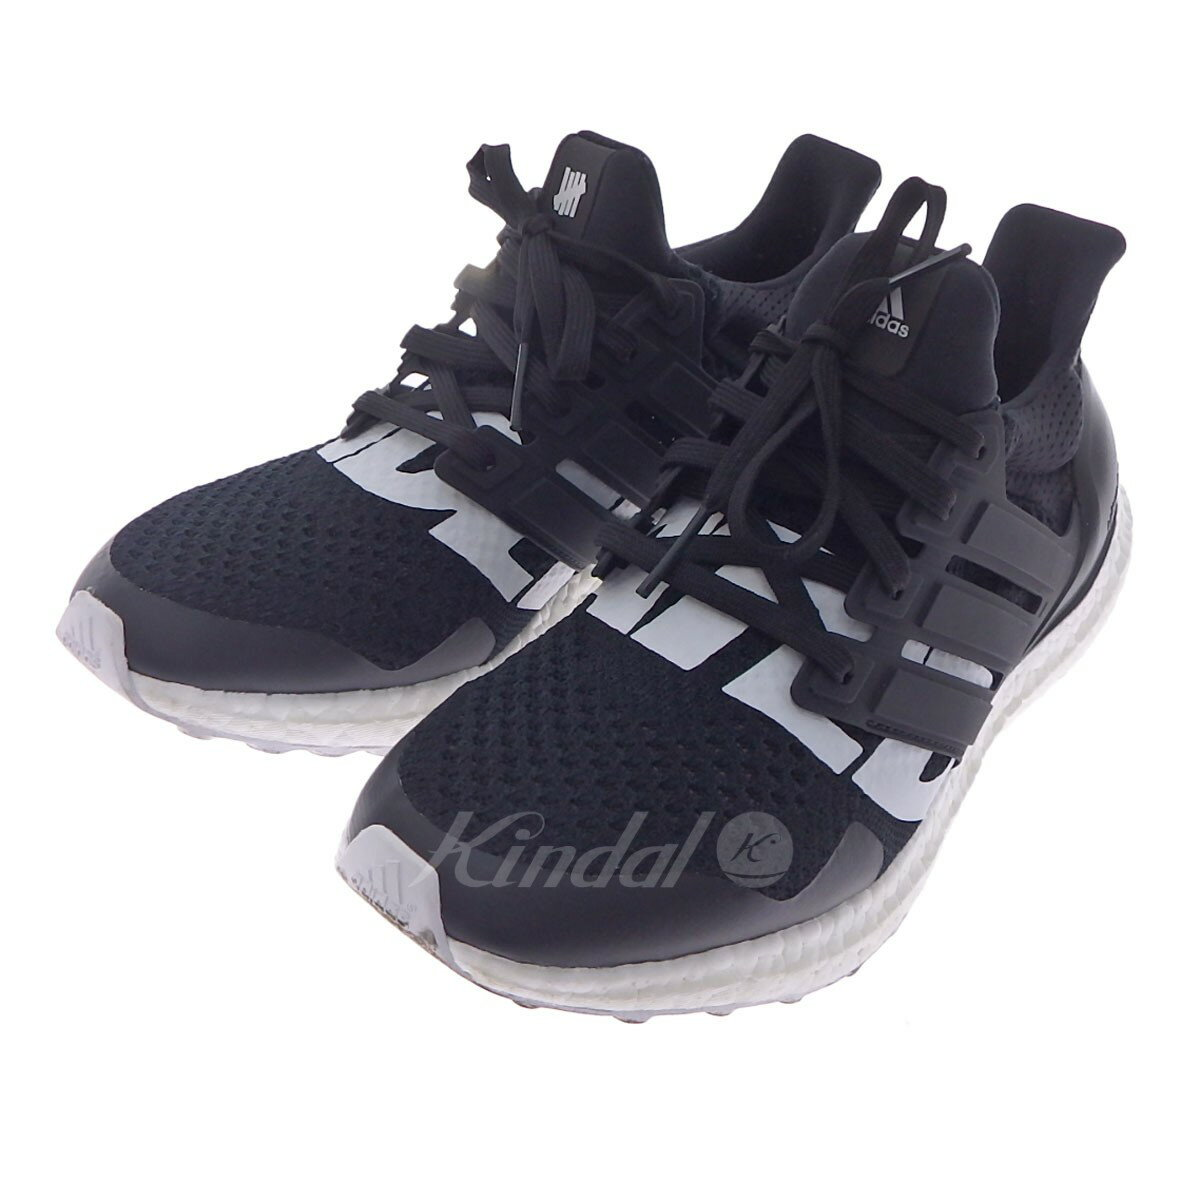 pretty nice 70c09 77f02 adidas Originals X UNDEFEATED B22480 ULTRABOOST sneakers black X white  size: 27 0cm (Adidas originals)